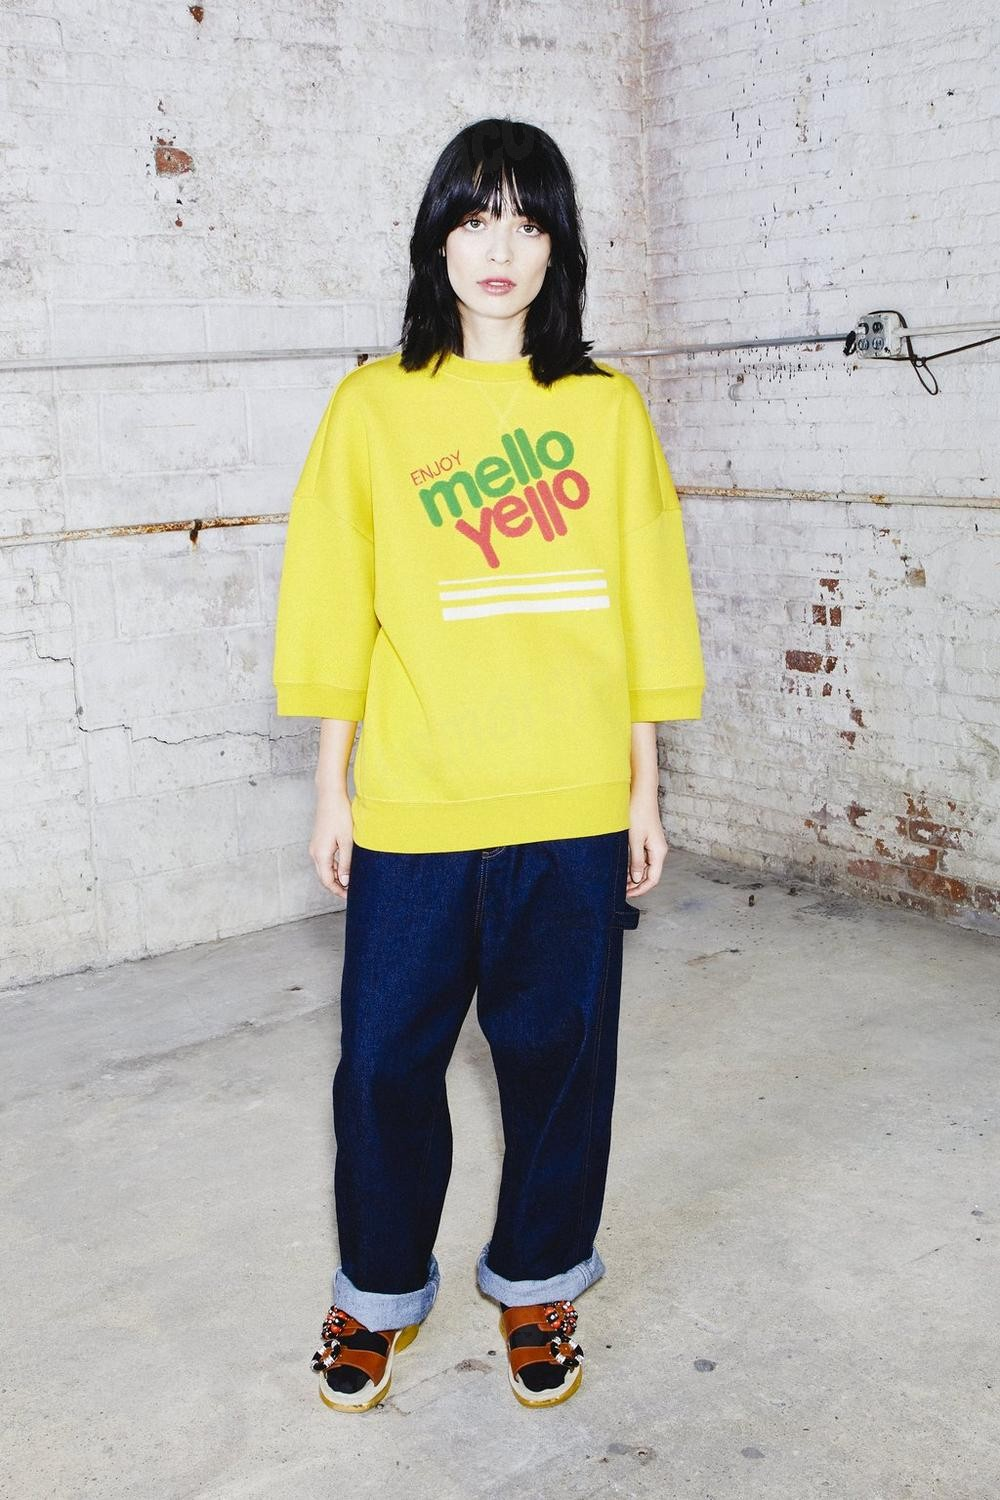 Marc_Jacobs_Sweaters_Mello_Yello_Short_Sleeve_Sweatshirt_Bright_Yellow..jpg